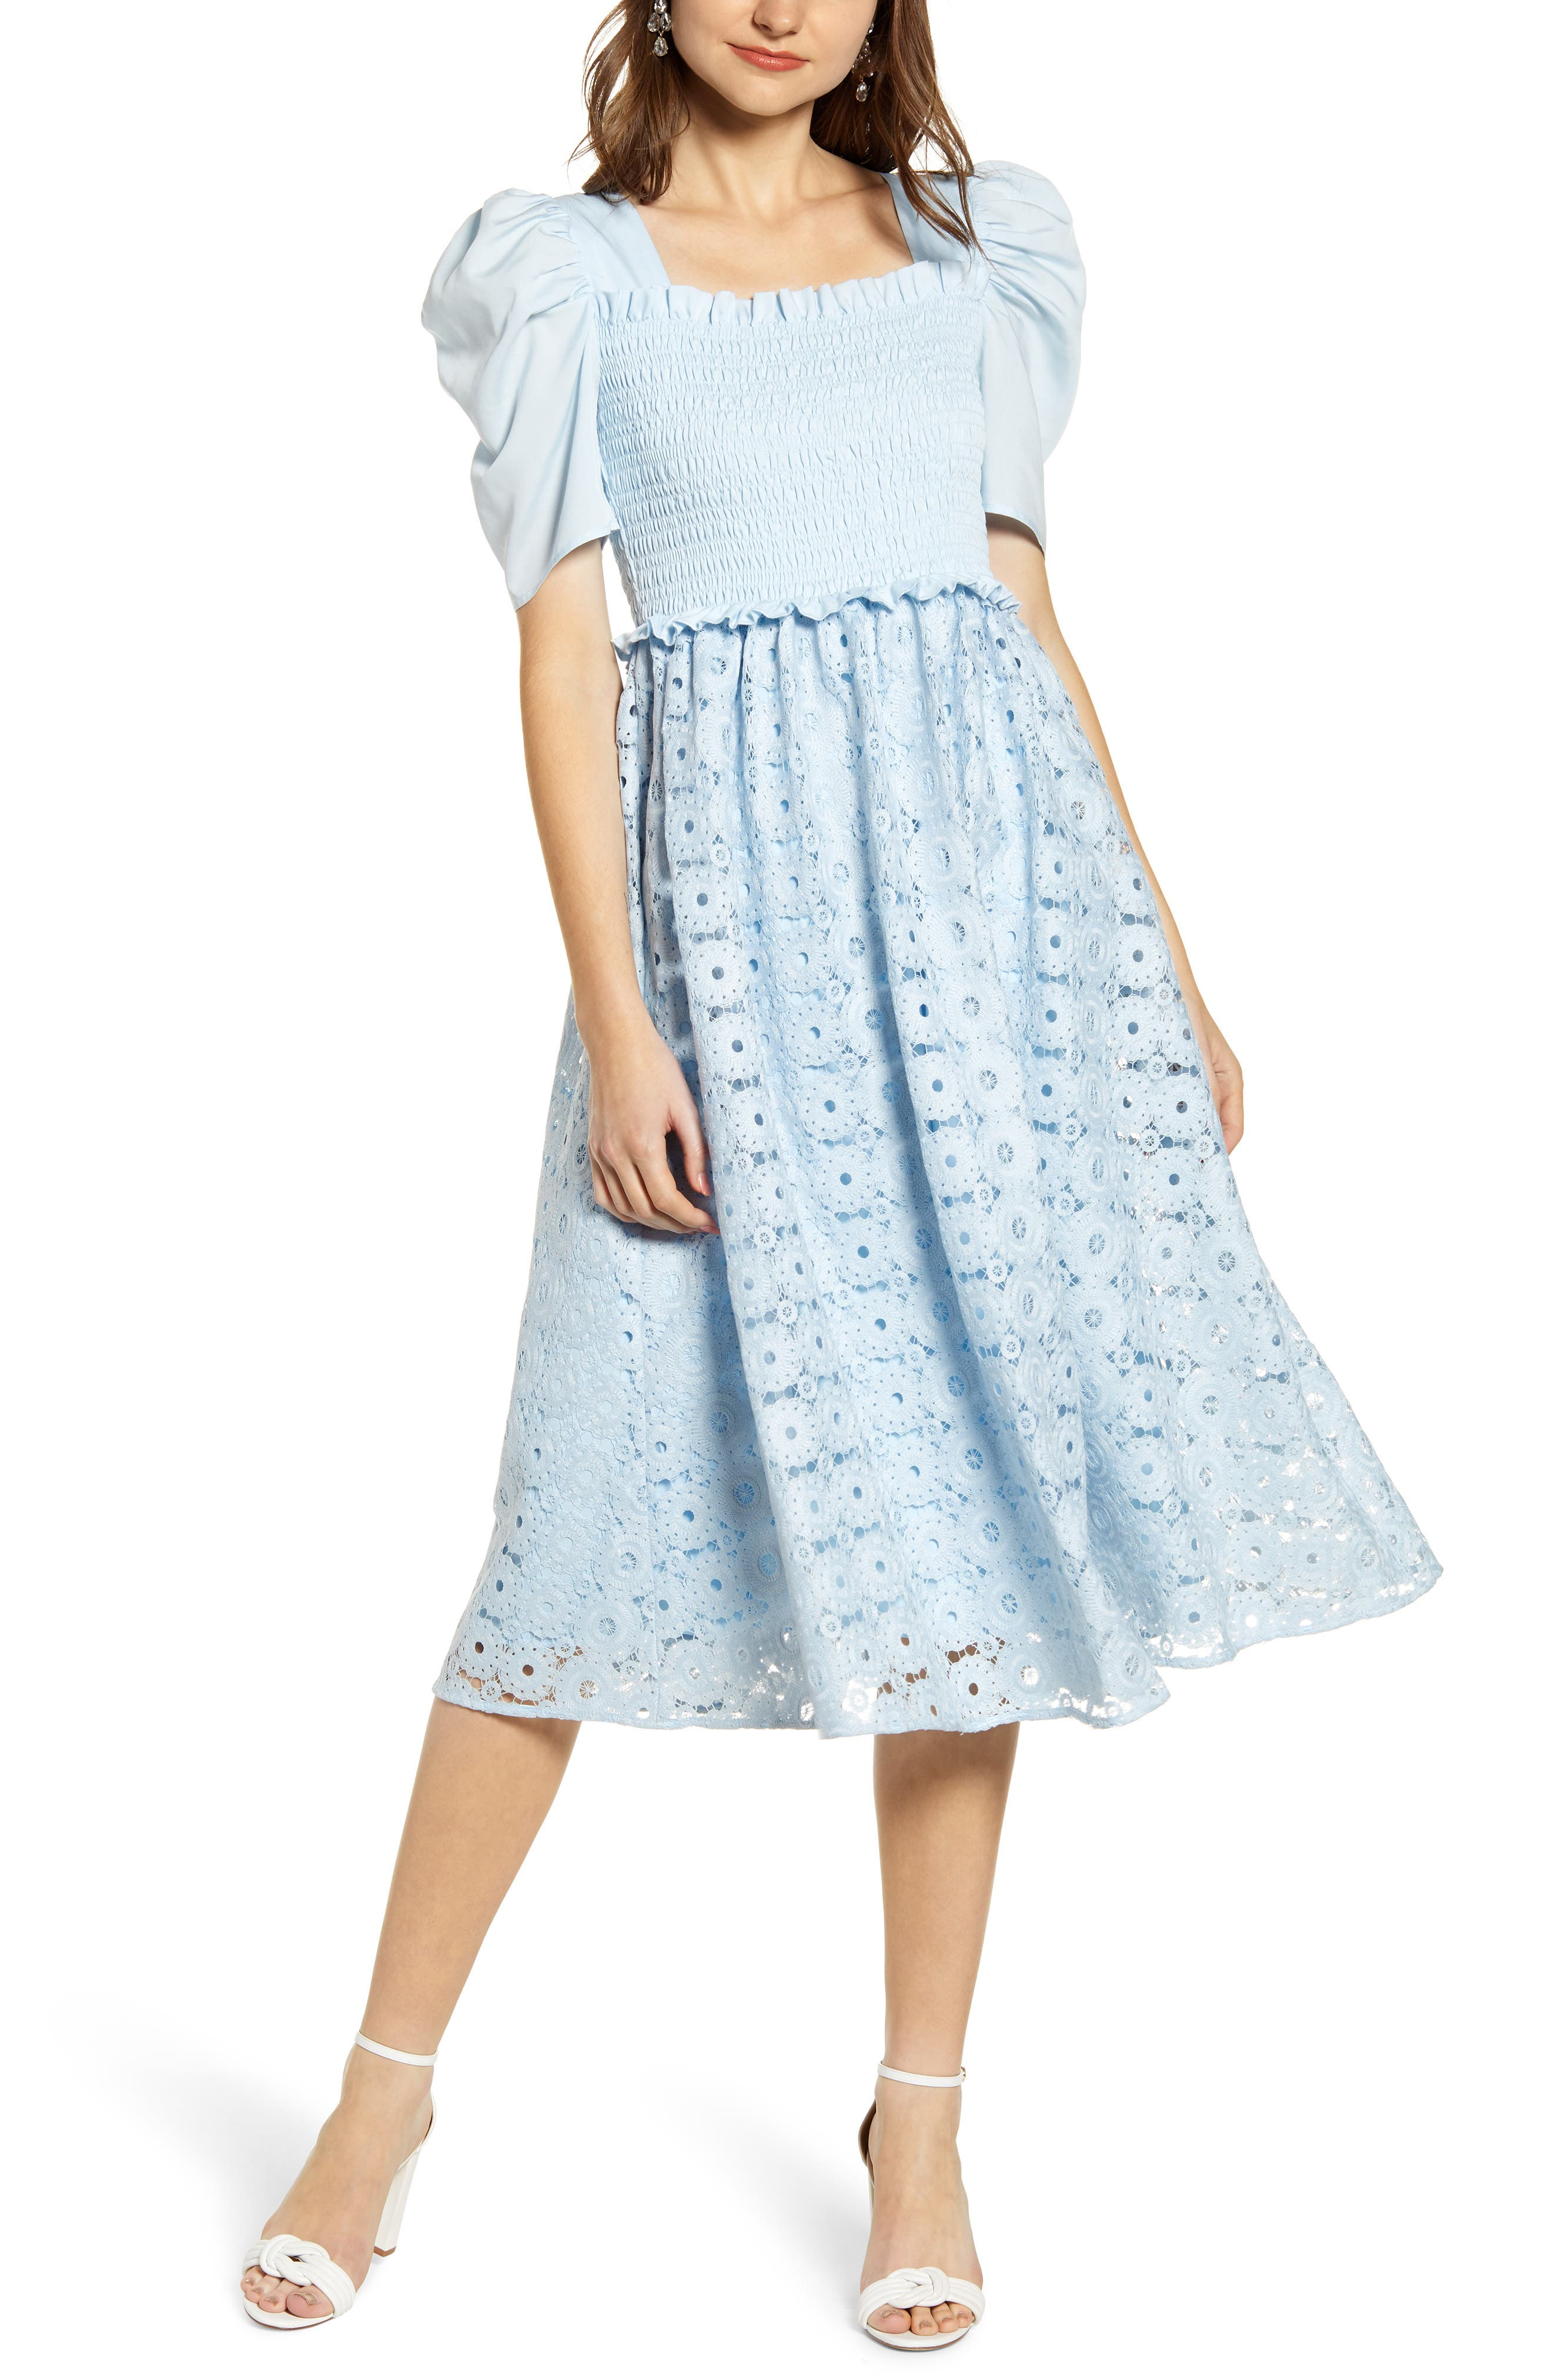 Rachel Parcell Smocked Waist A-Line Dress, Blue (Nordstrom Exclusive)